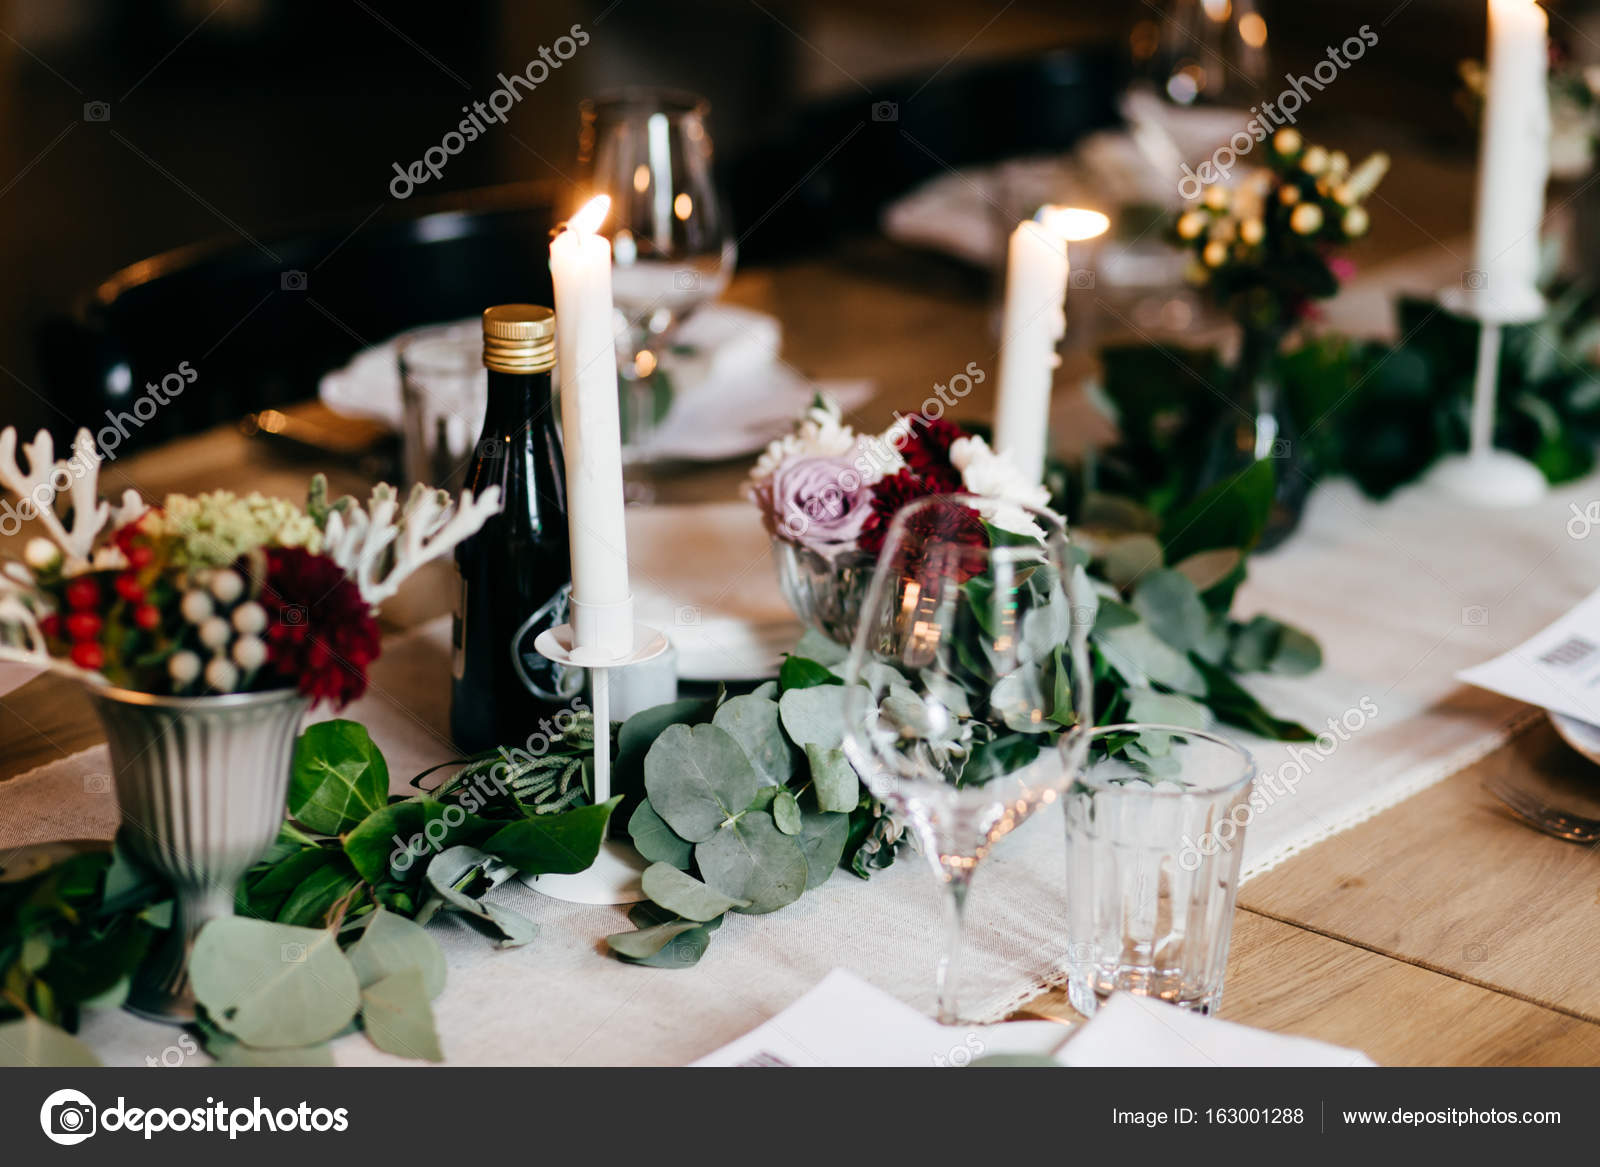 Table served for wedding party. Candles decoration cutlery and drinks on festive table. Wedding table decorated with flowers and candles. Table setting ... & Table served for wedding party. Candles decoration cutlery and ...